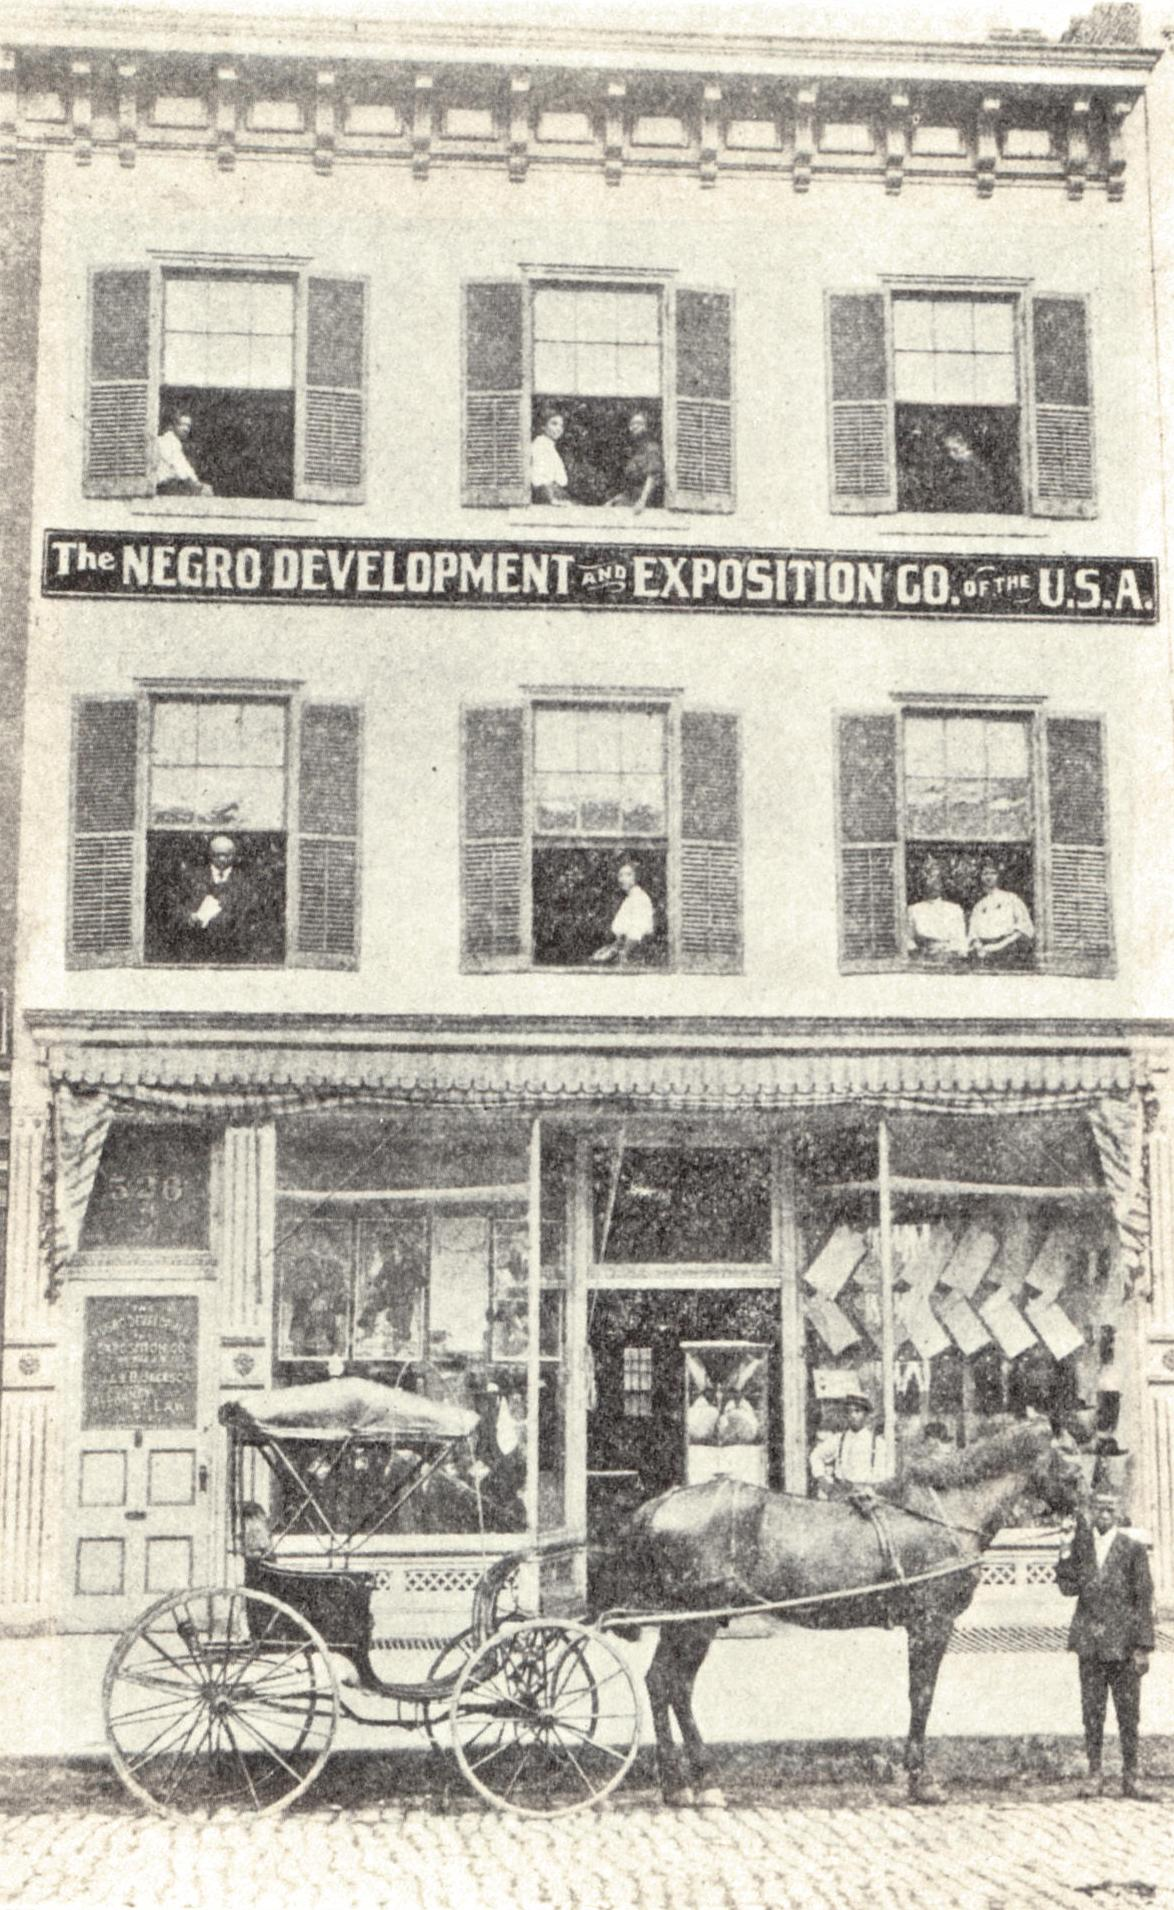 African Americans created dozens of exhibitions dedicated to preserving black history and culture during the late 19th and early 20th century. This exhibit was part of the 1907 Jamestown Exposition.